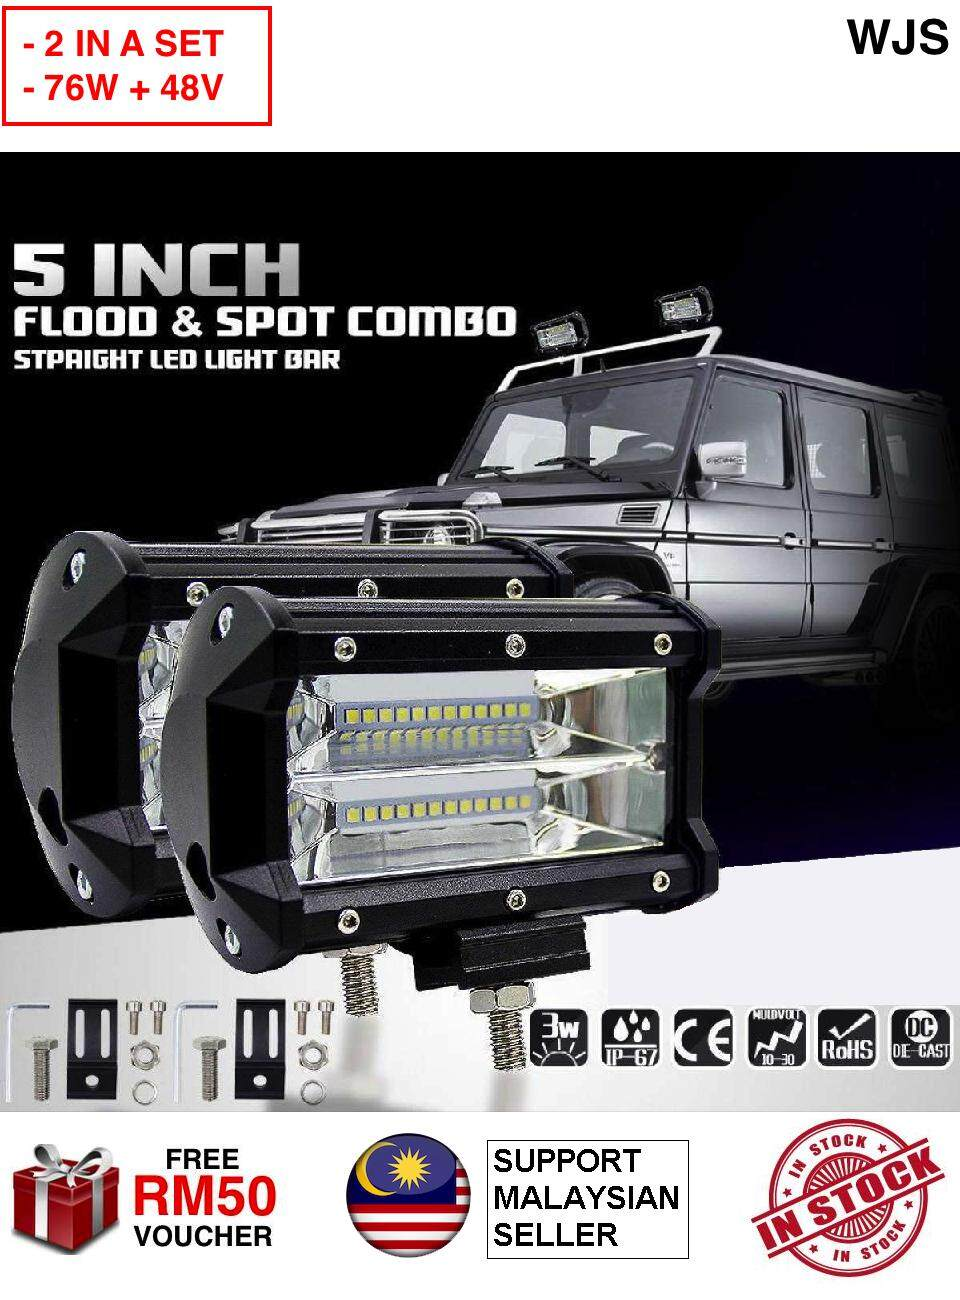 (2 IN A SET) WJS 2pcs 2 pcs SUV Fog Light LED Waterproof 5inch 76W LED Work Light for Driving Fog Lamp Offroad Truck SUV COOL WHITE [FREE RM 50 VOUCHER]